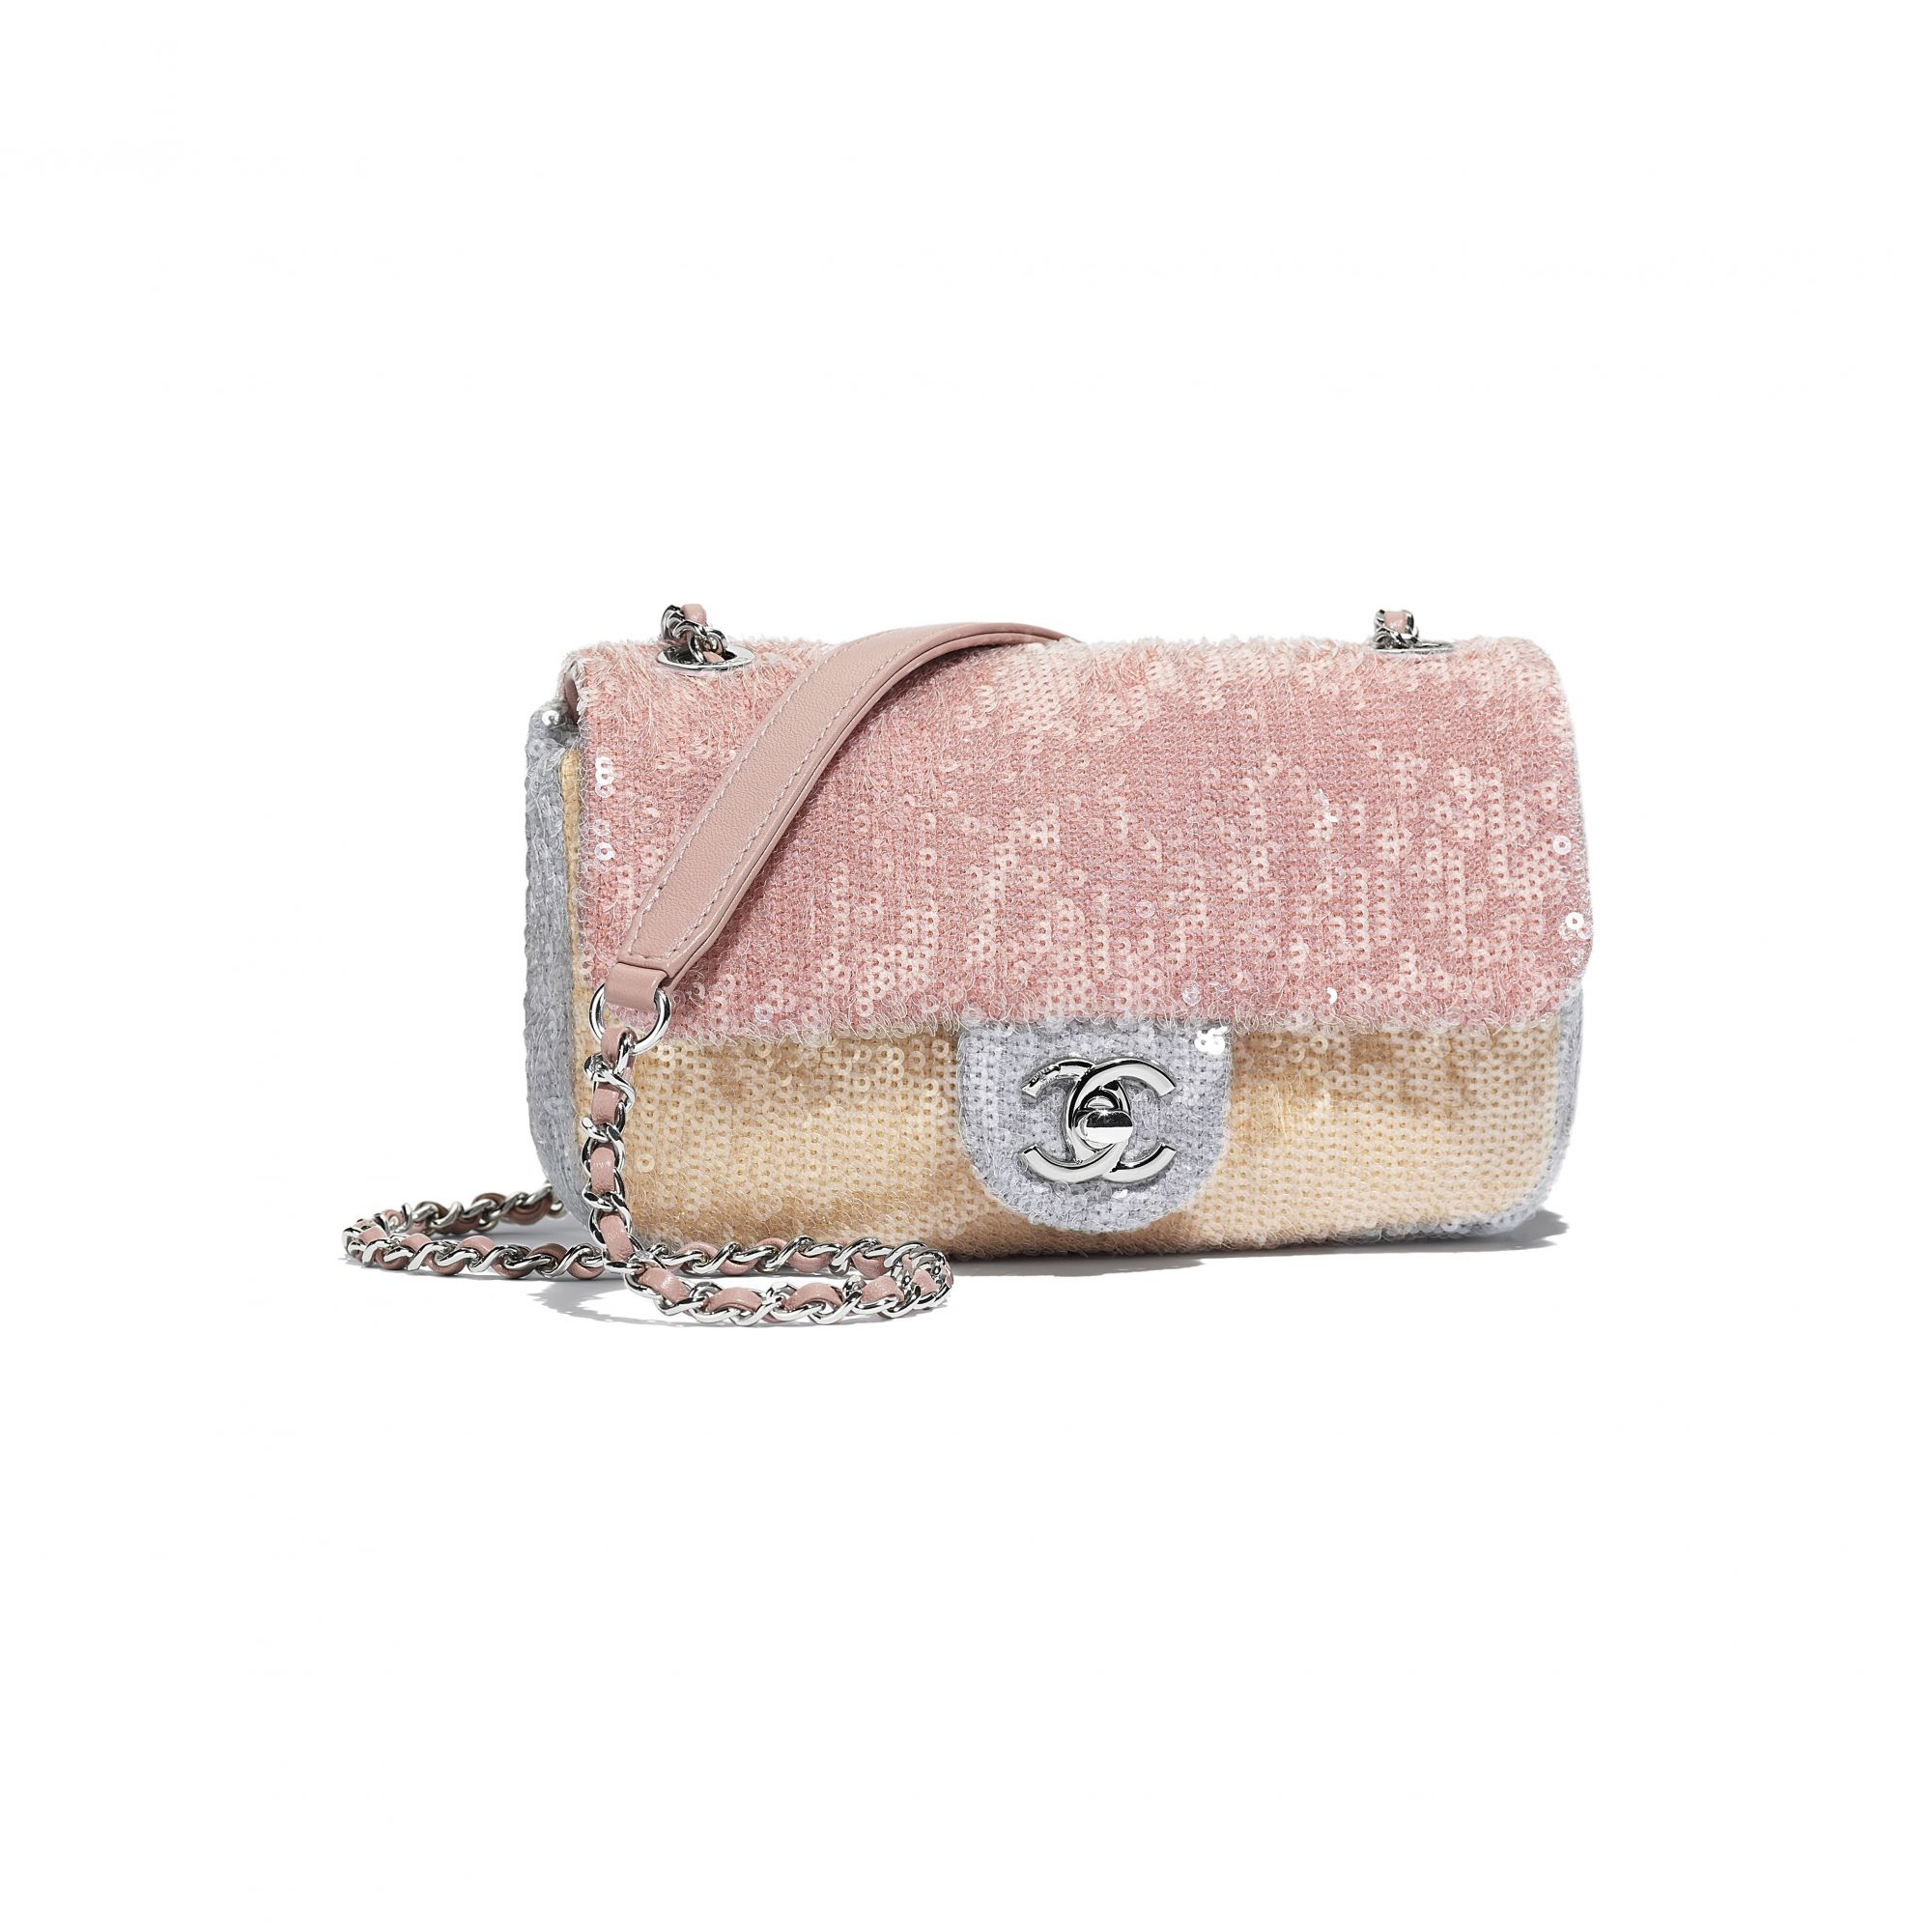 Multicoloured bag in leather and sequins